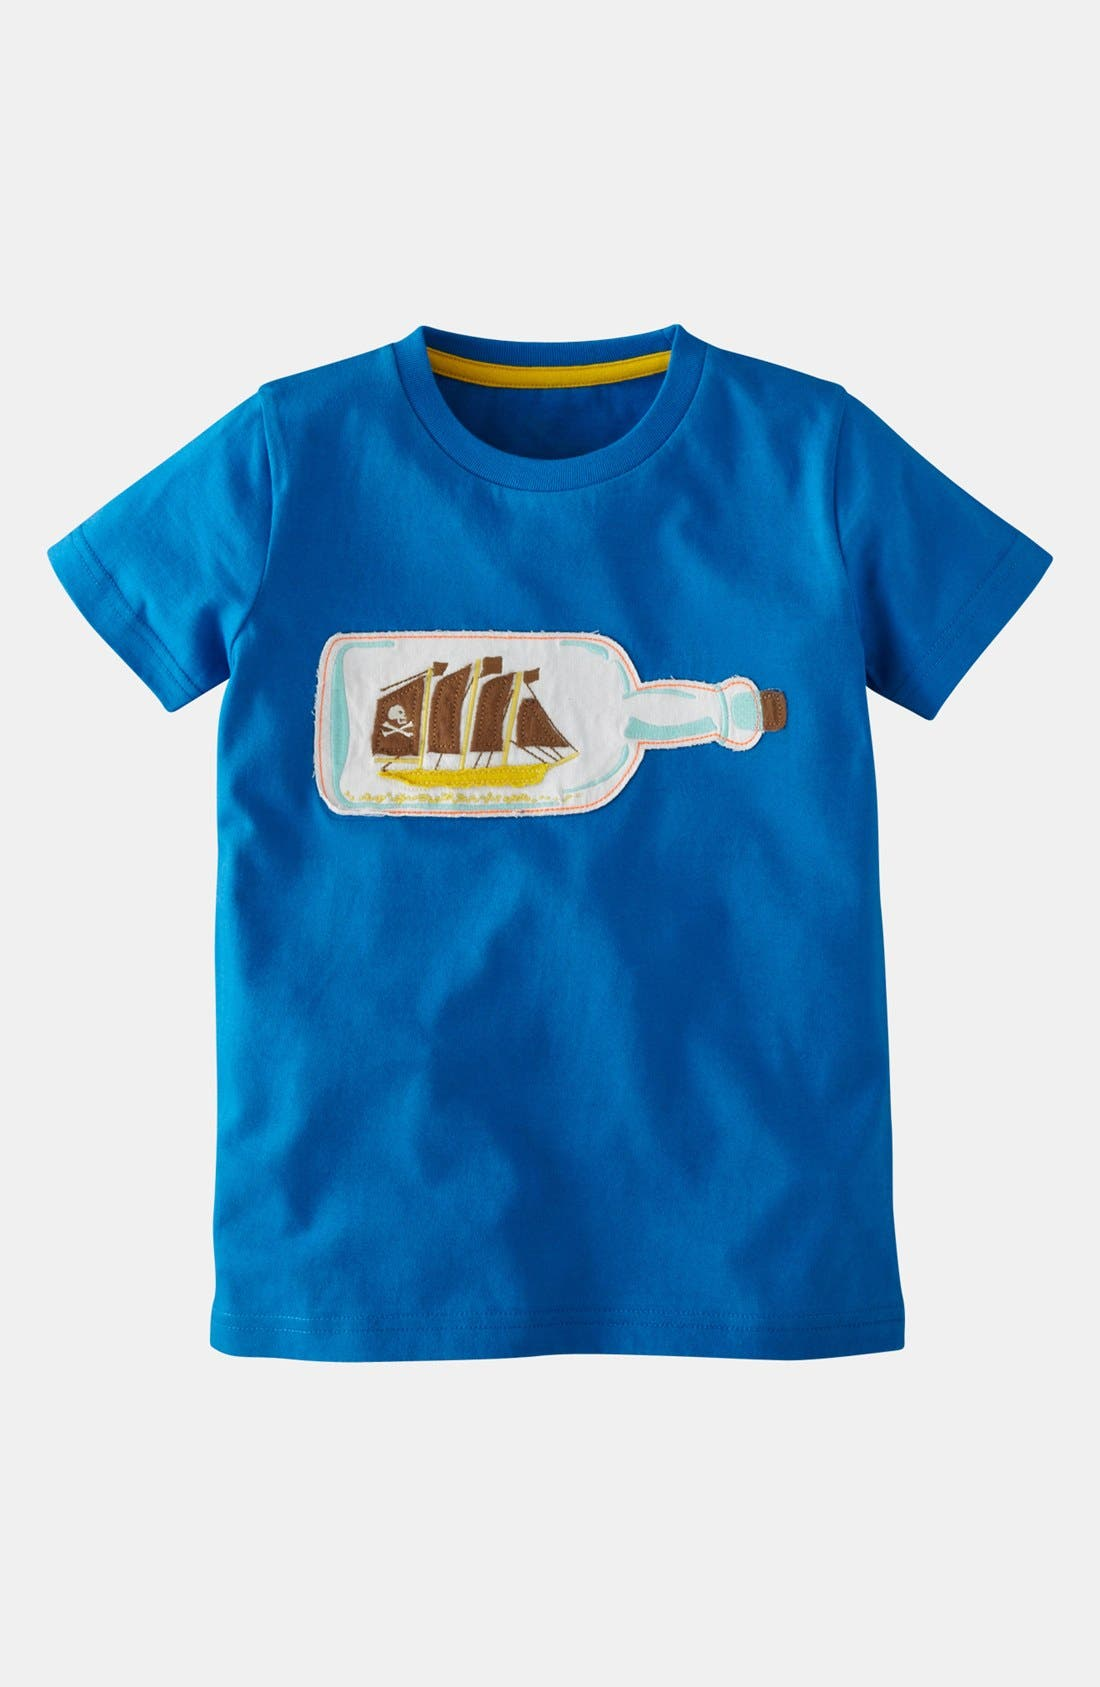 Alternate Image 1 Selected - Mini Boden 'Pirate' T-Shirt (Little Boys & Big Boys)